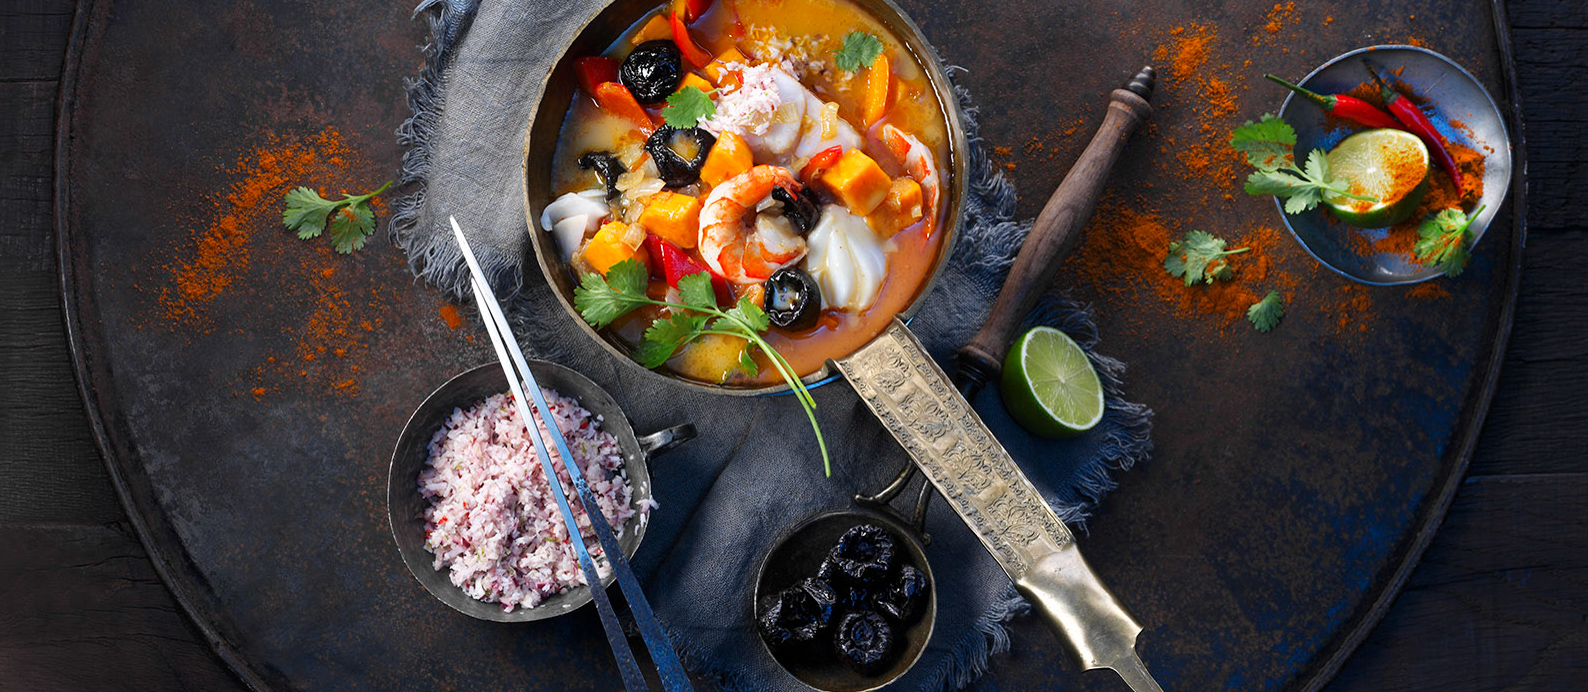 Full of color and flavor, this Southeast Asian fish curry is an unexpected twist on a classic curry. Tamarind is a typical seasoning ingredient in fish curries because it delivers bright flavor. While sweeter, the tanginess of prunes can achieve a similar effect. For a variation, try soaking prunes in lime juice before adding them to the curry.